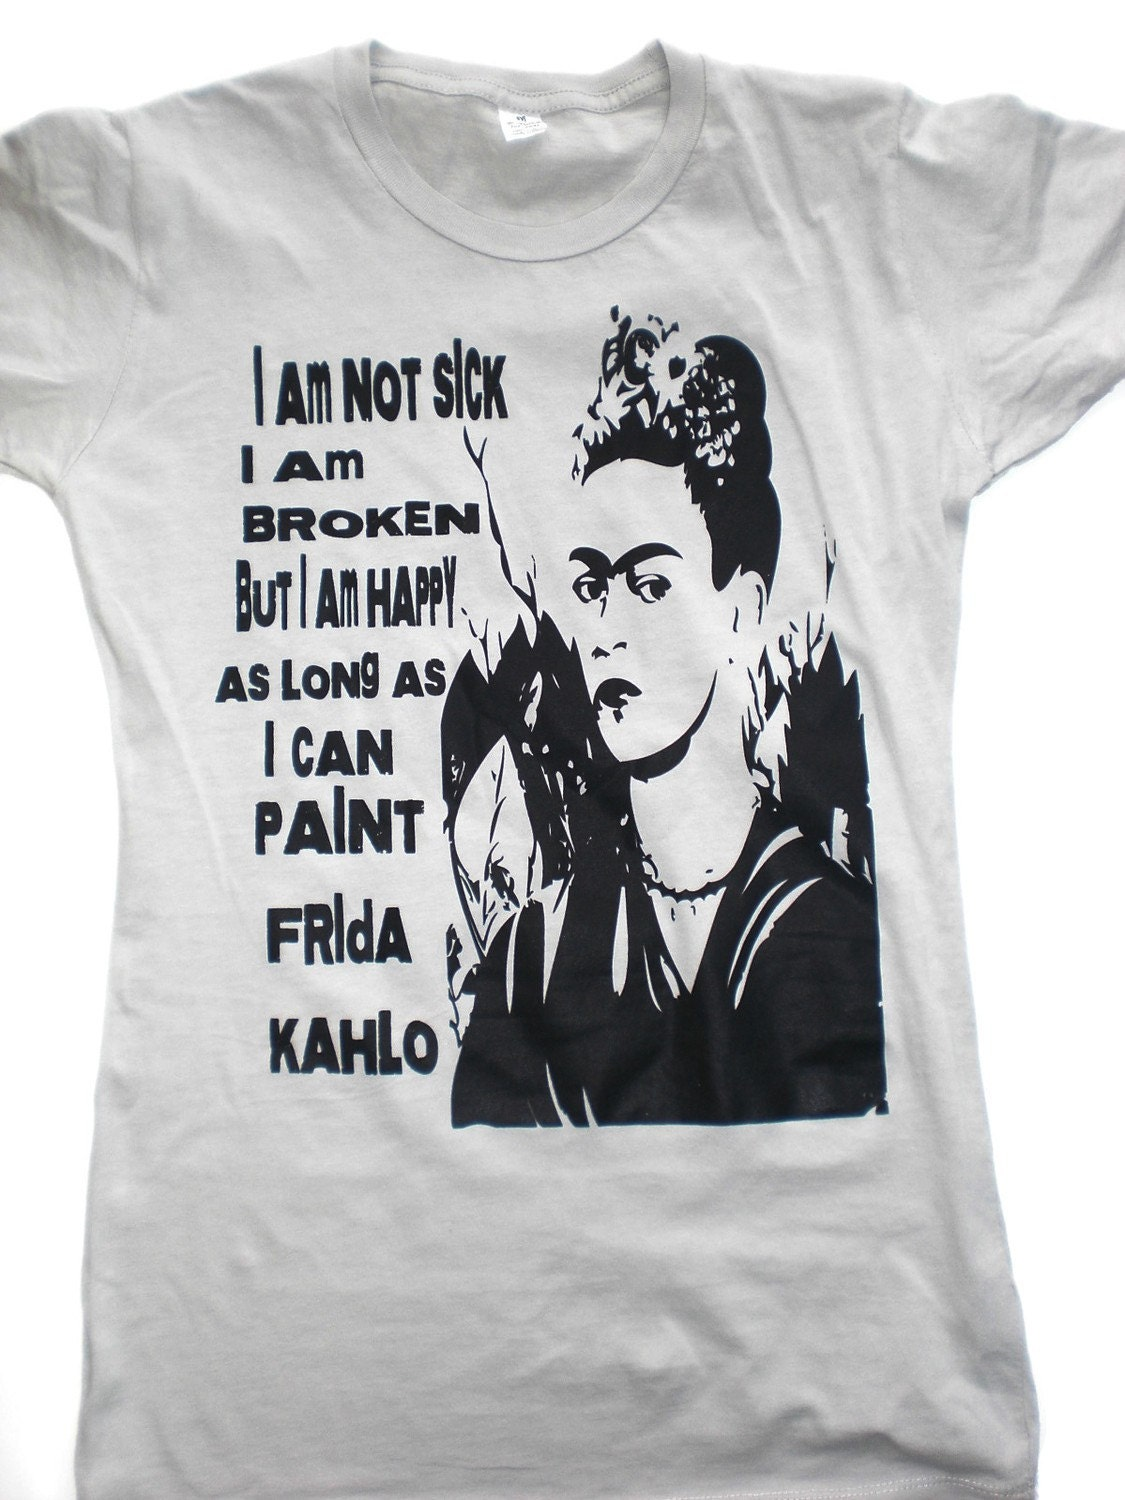 FRIDA KAHLO tshirt Alternative Apparel S-M-L